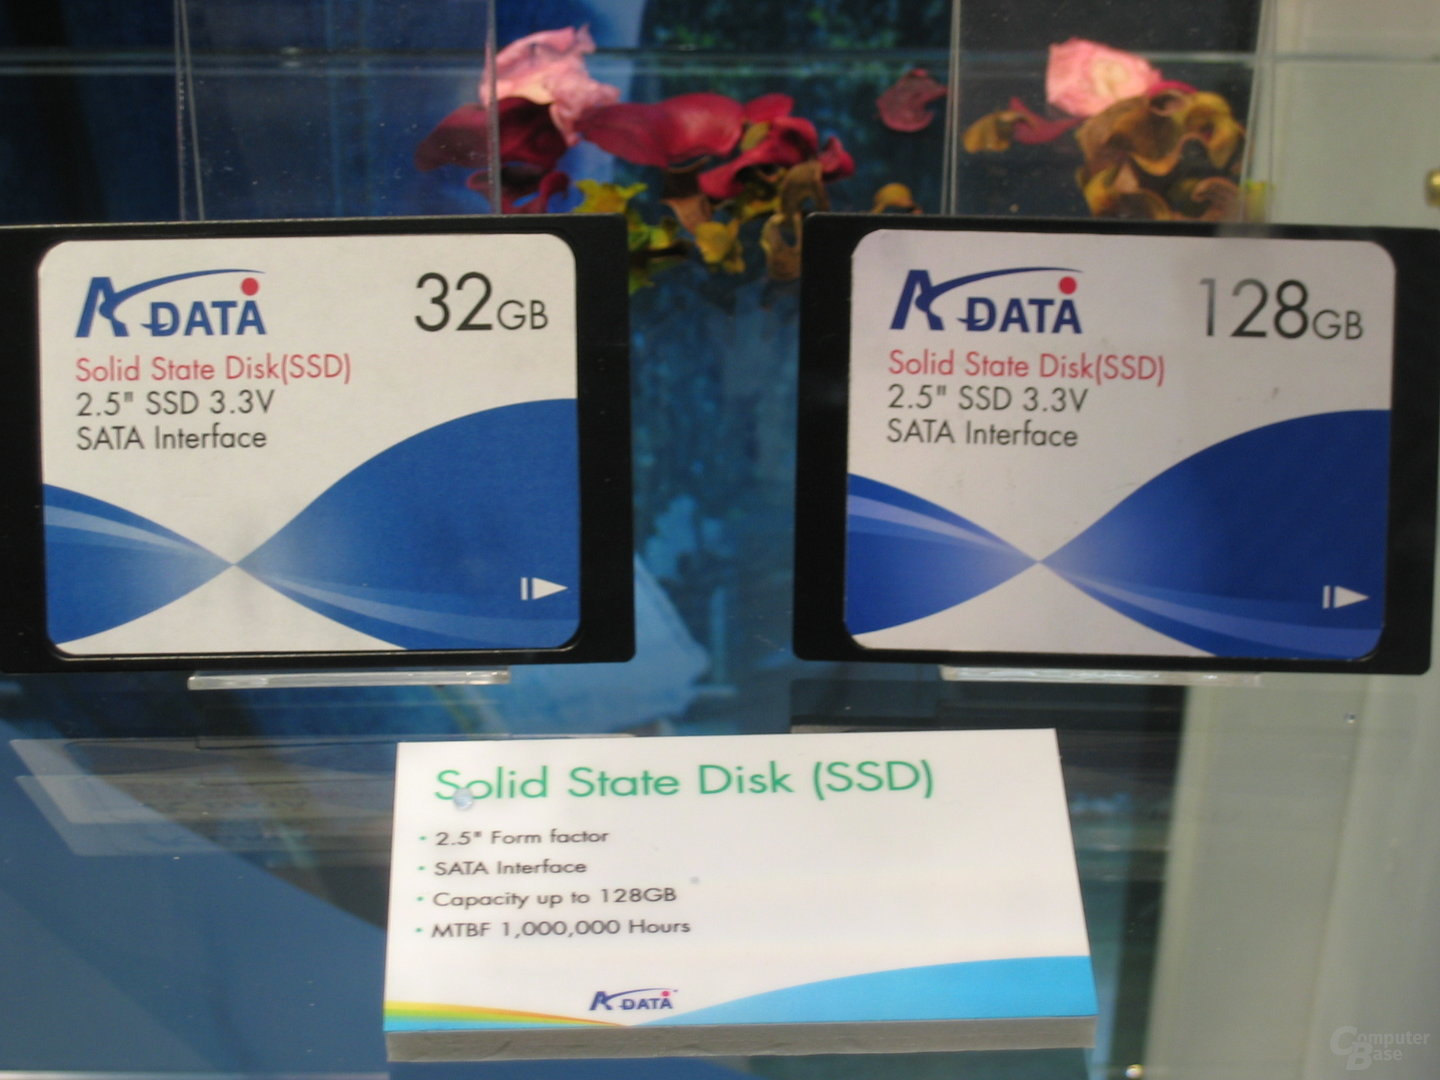 A-Data Solid State Disk